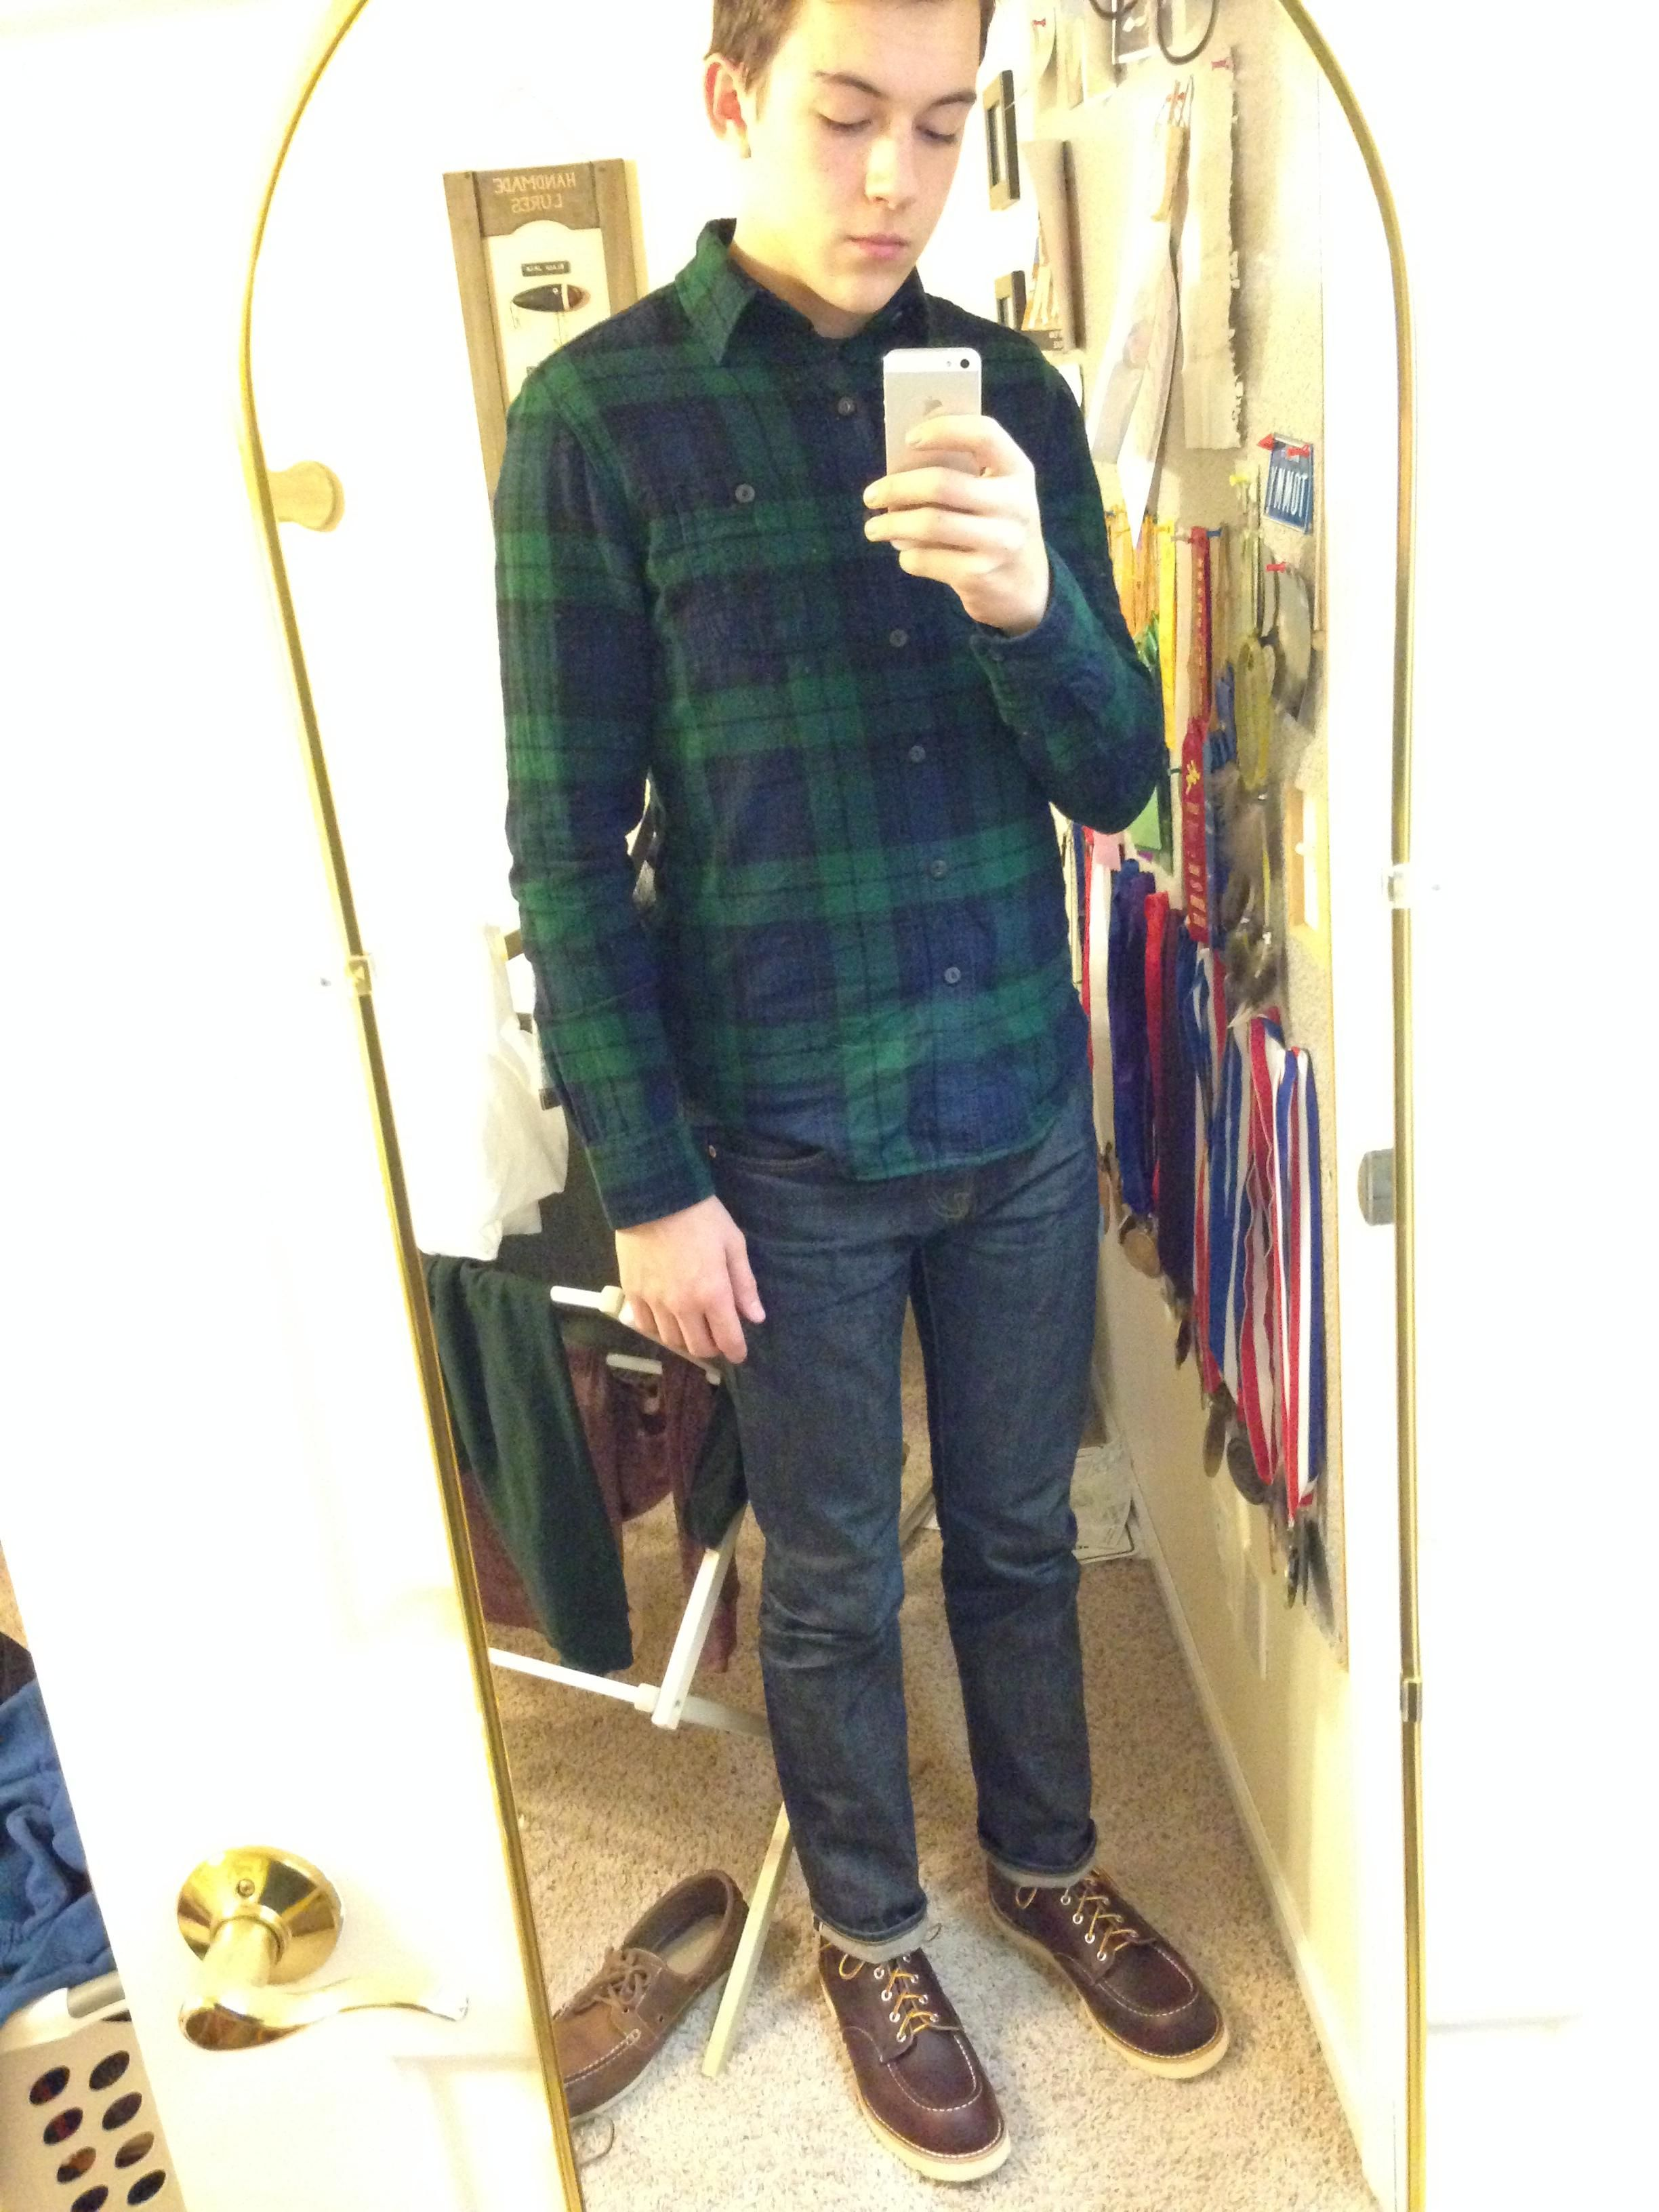 Plaid shirt, jeans and brown boots. Love the green/navy combo in the shirt!